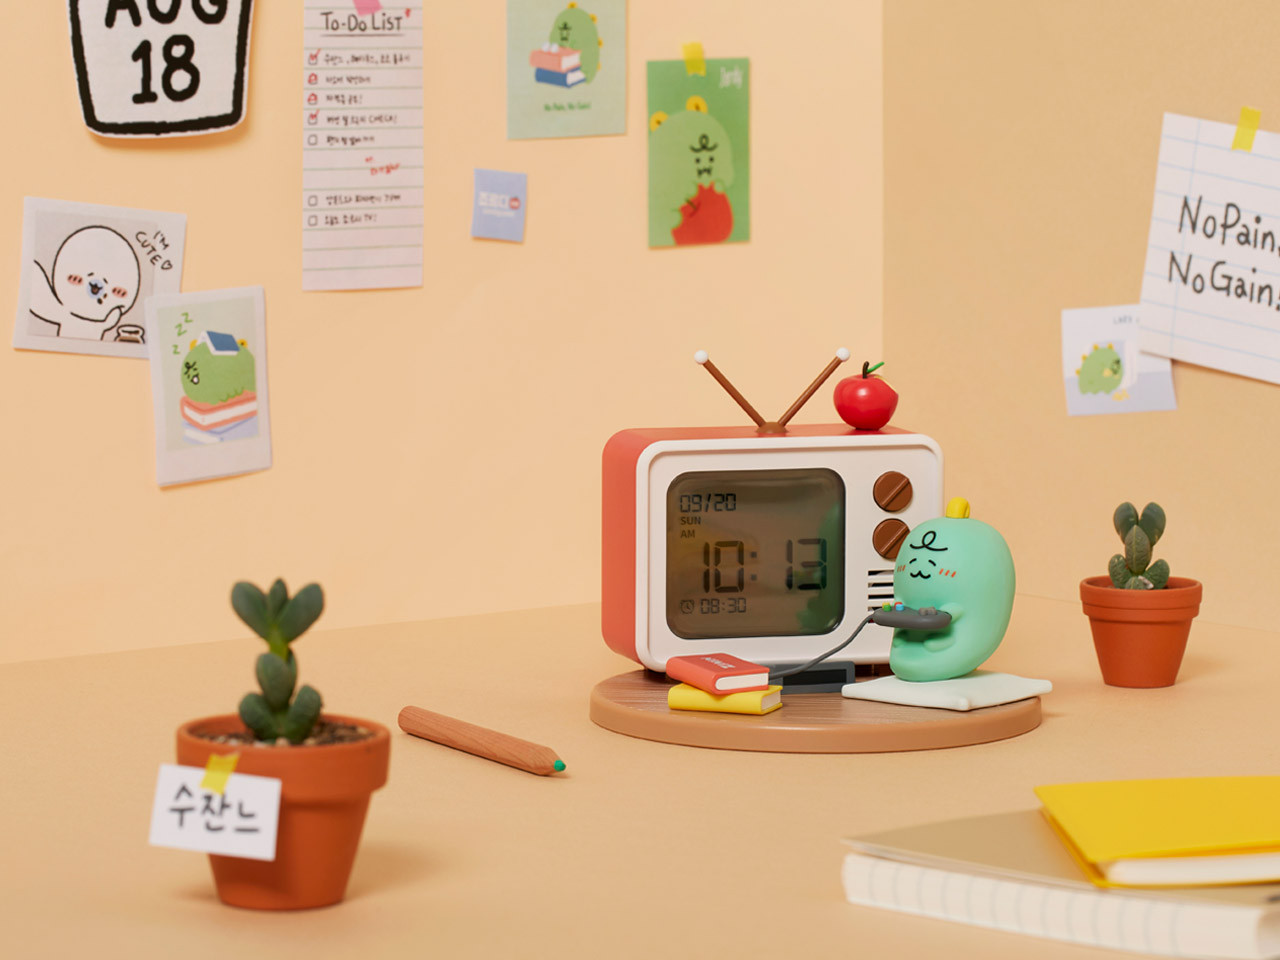 Kakao Jordy Digital Alarm Clock